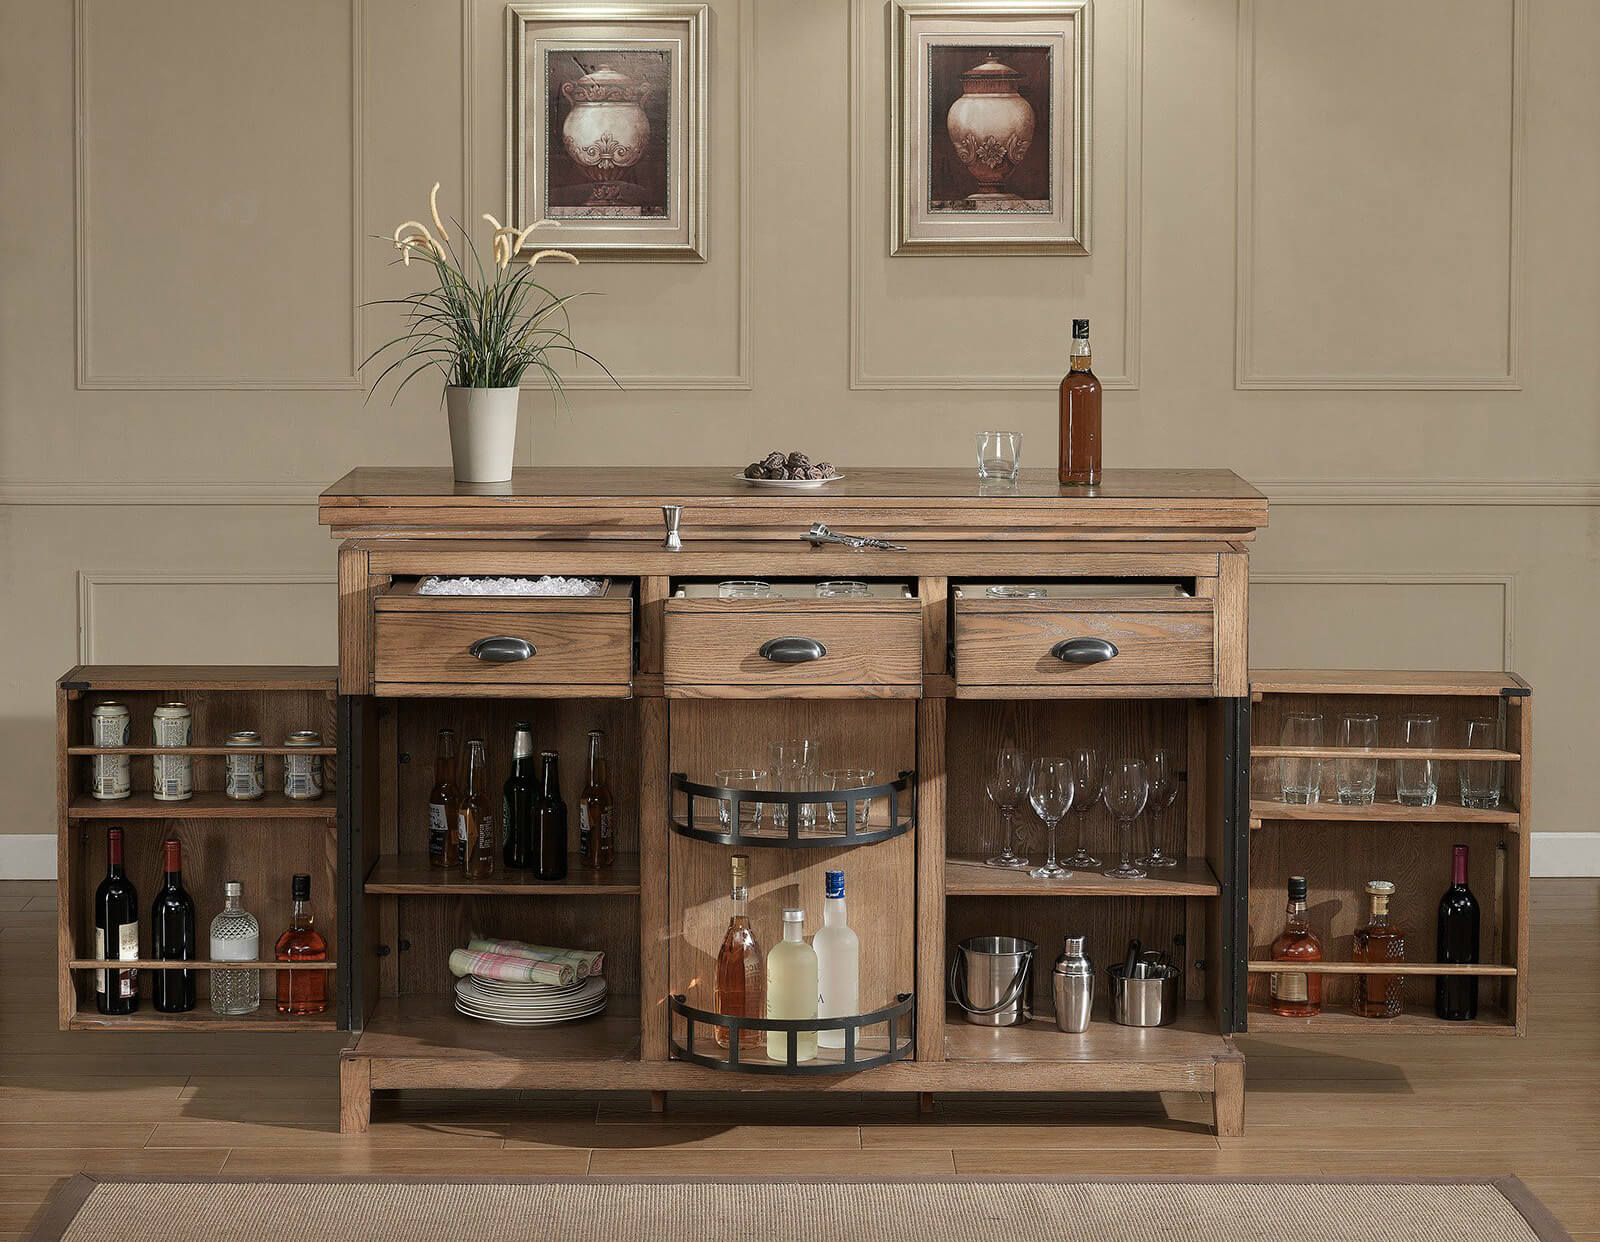 Beau As You Can See, The Amount Of Storage In This Rustic Home Bar Cabinet Unit